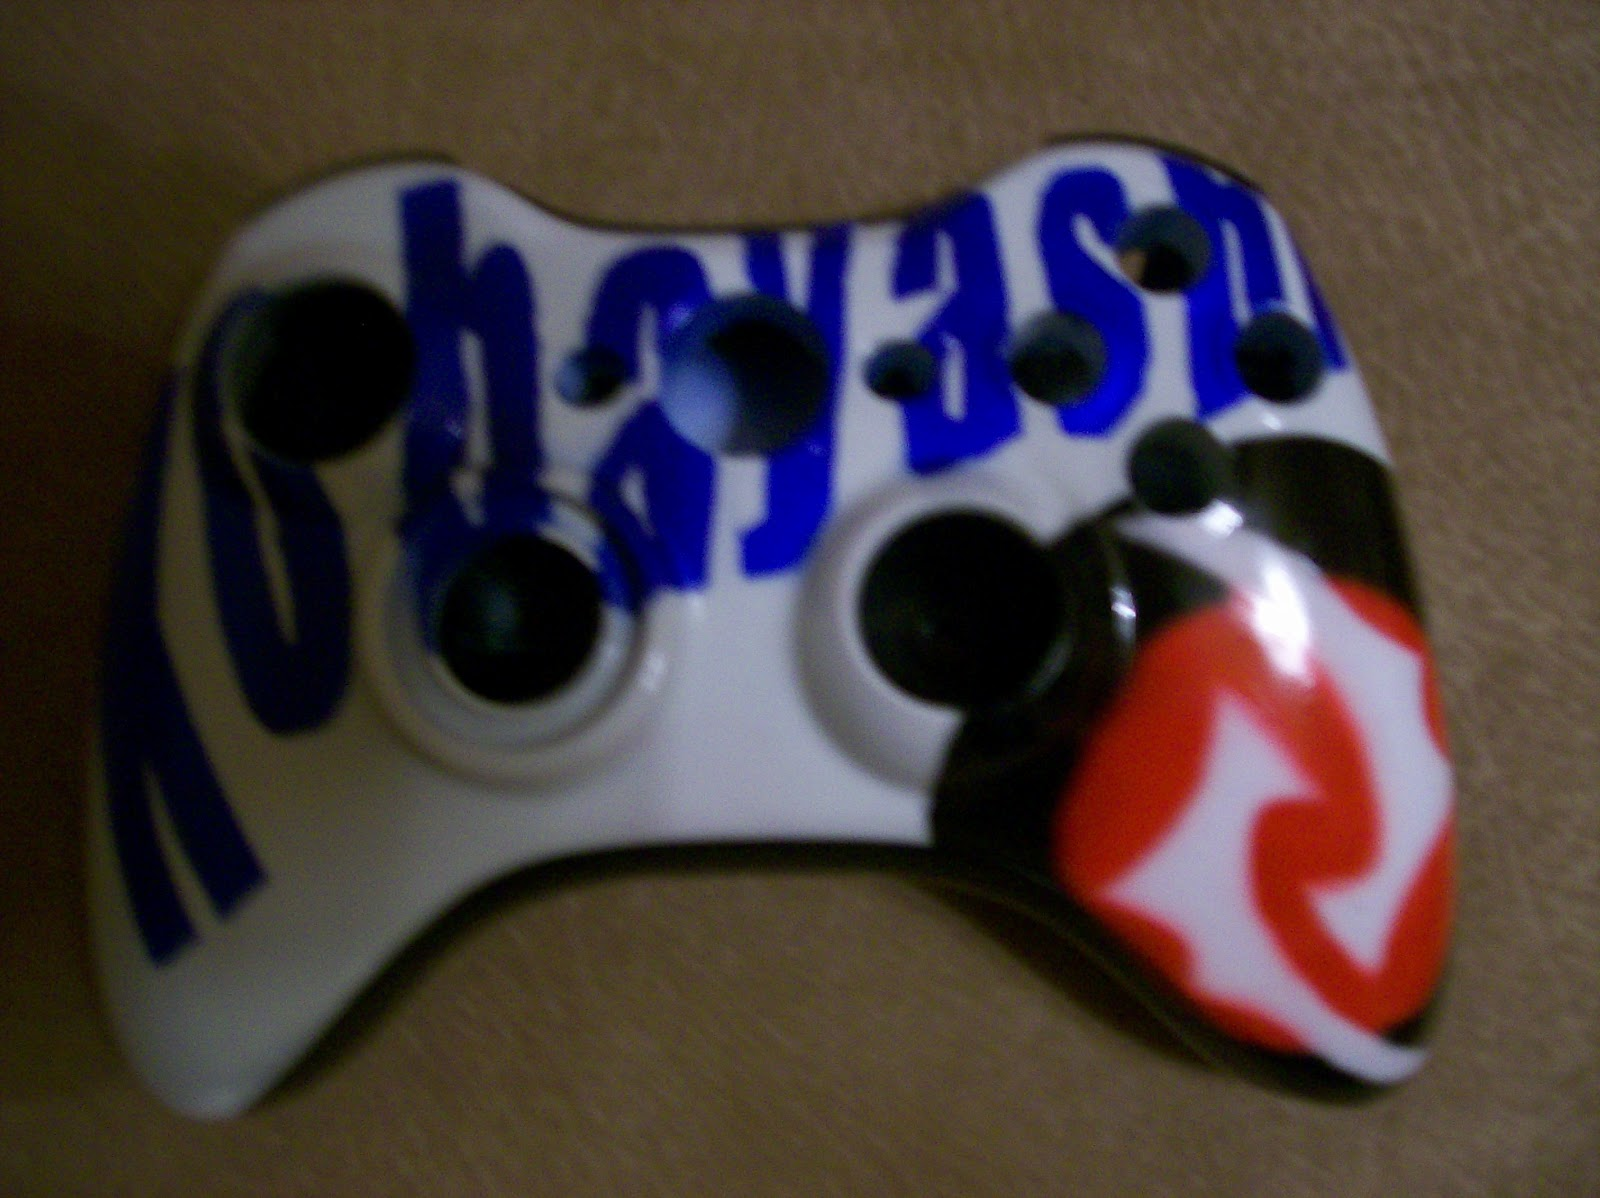 Airbrush Master: Xbox 360 faceplates and controllers